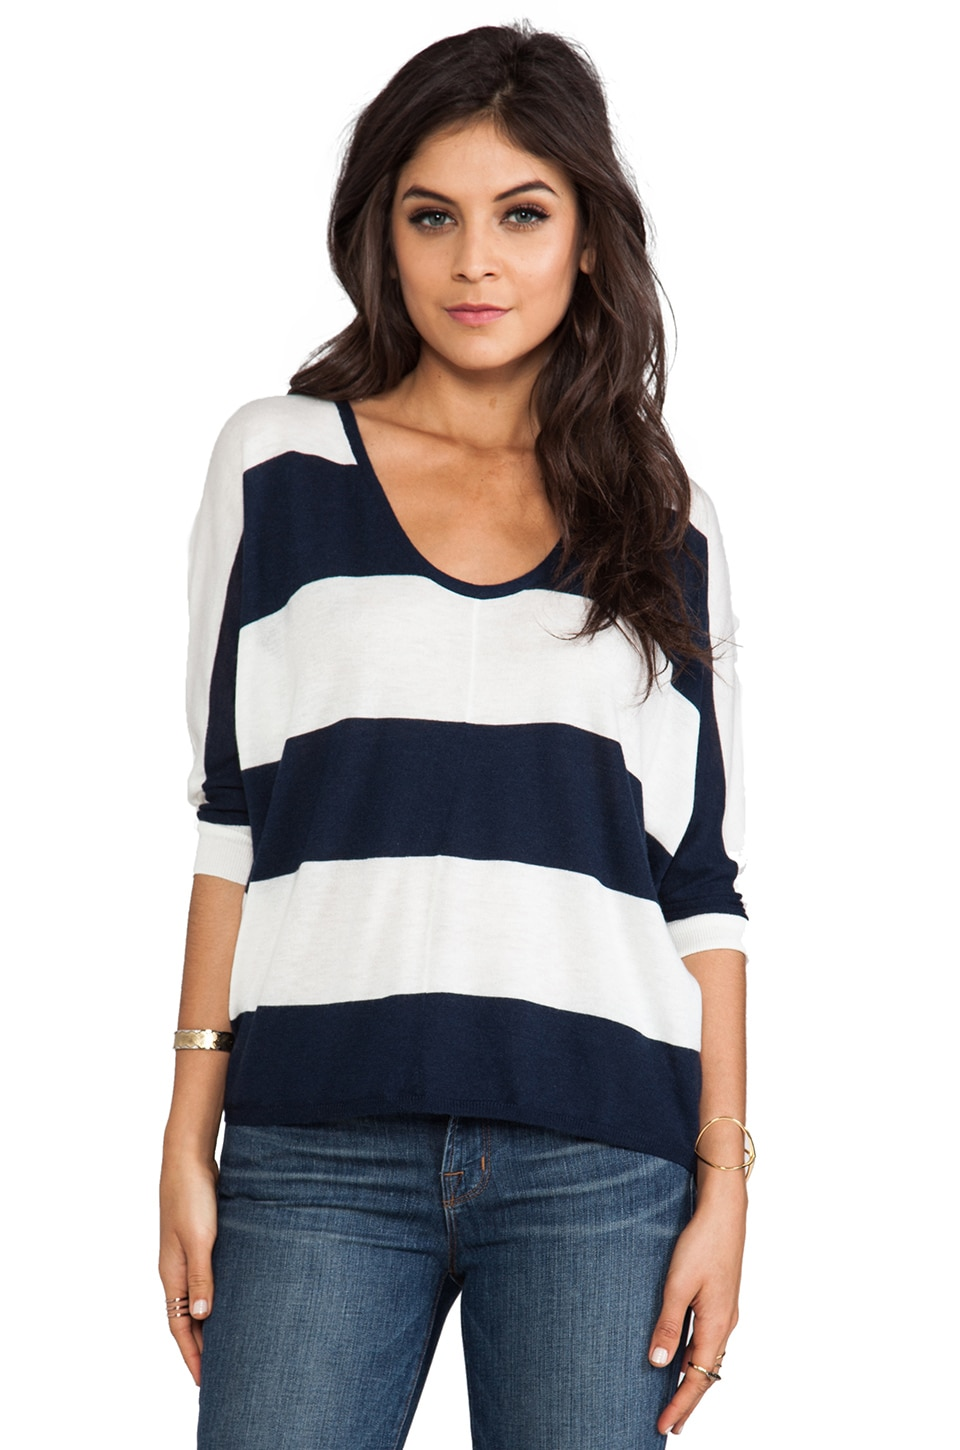 Splendid Cashmere Blend Sweater in Navy & White